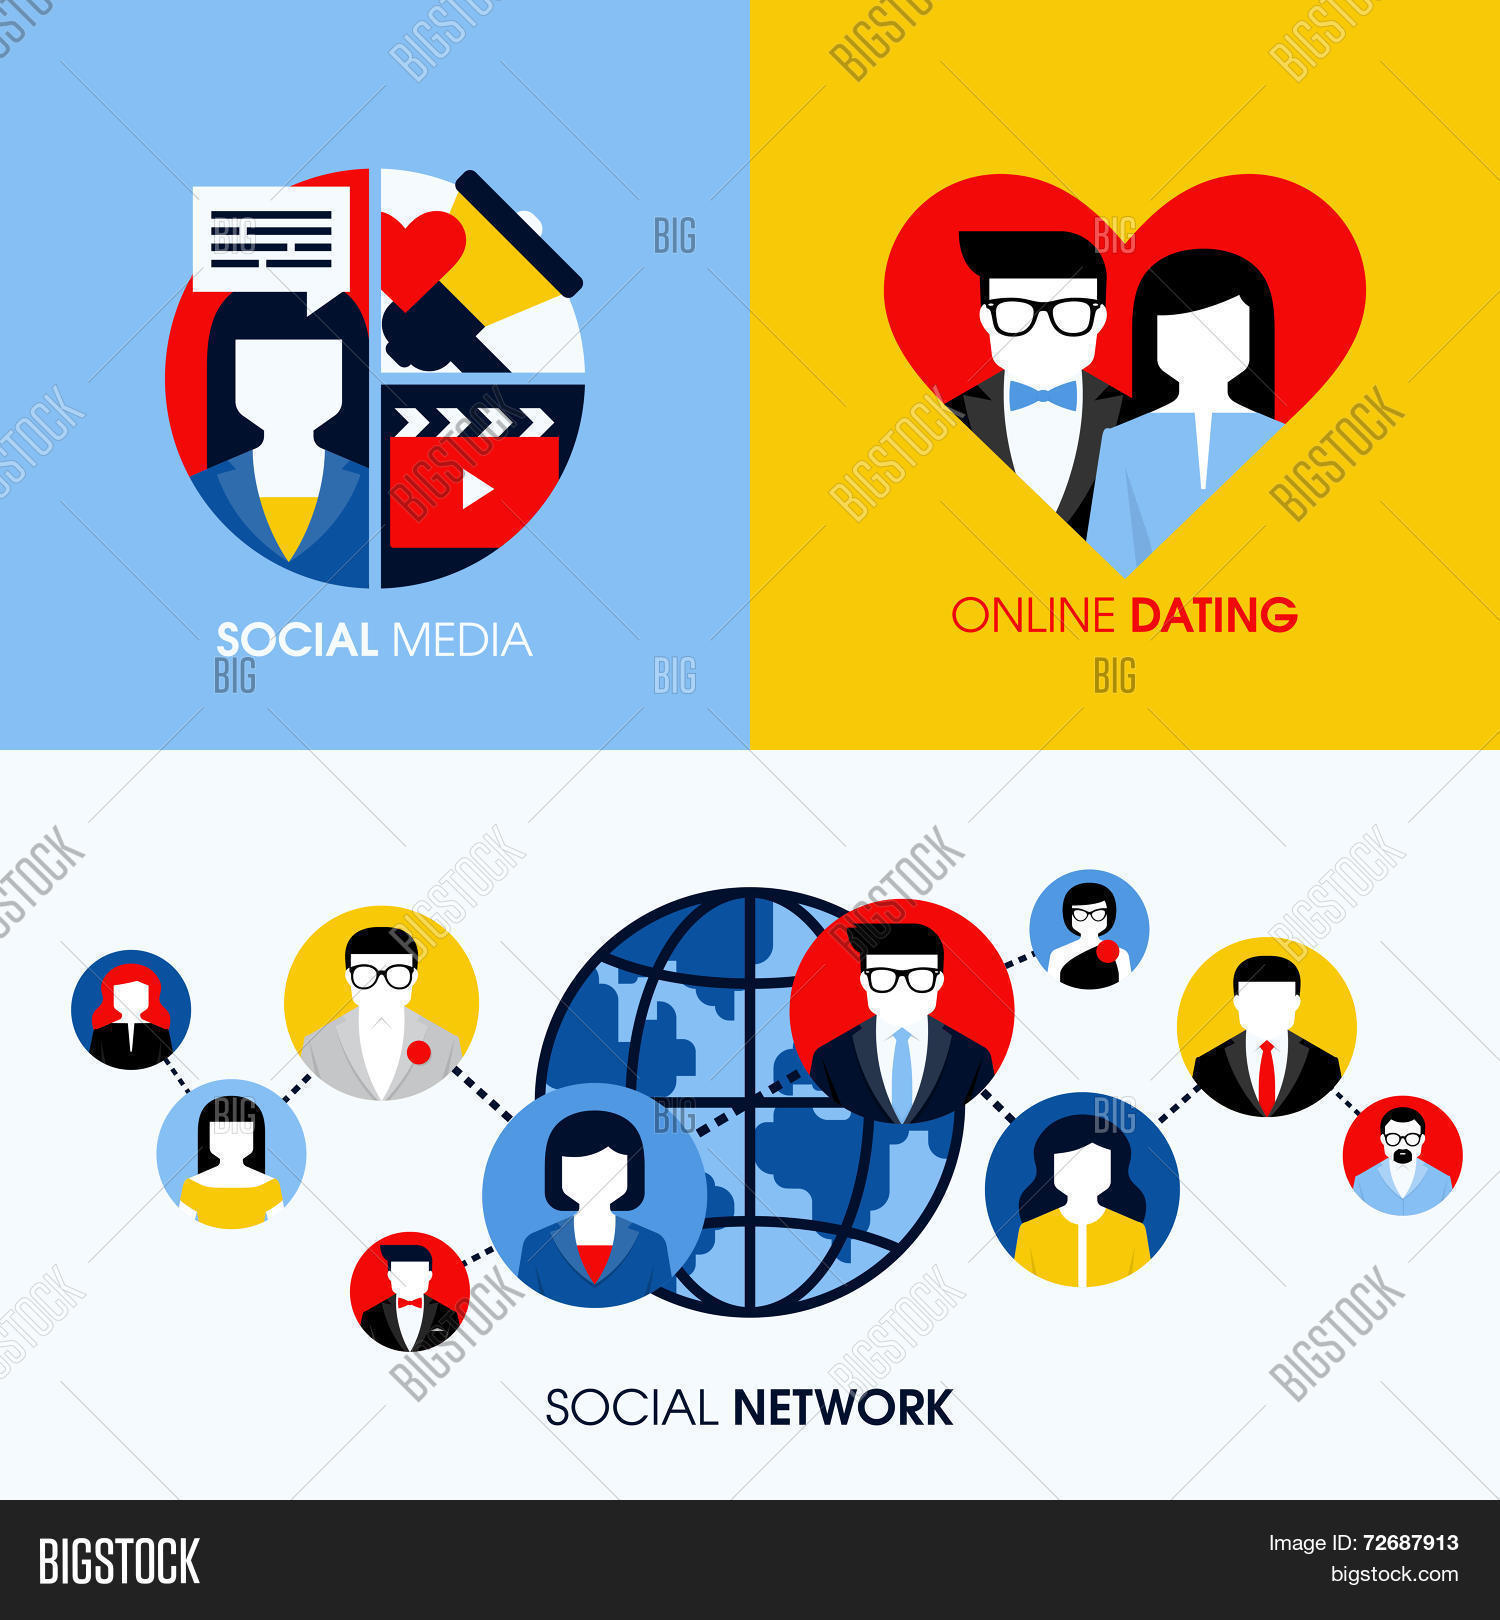 Free social online dating